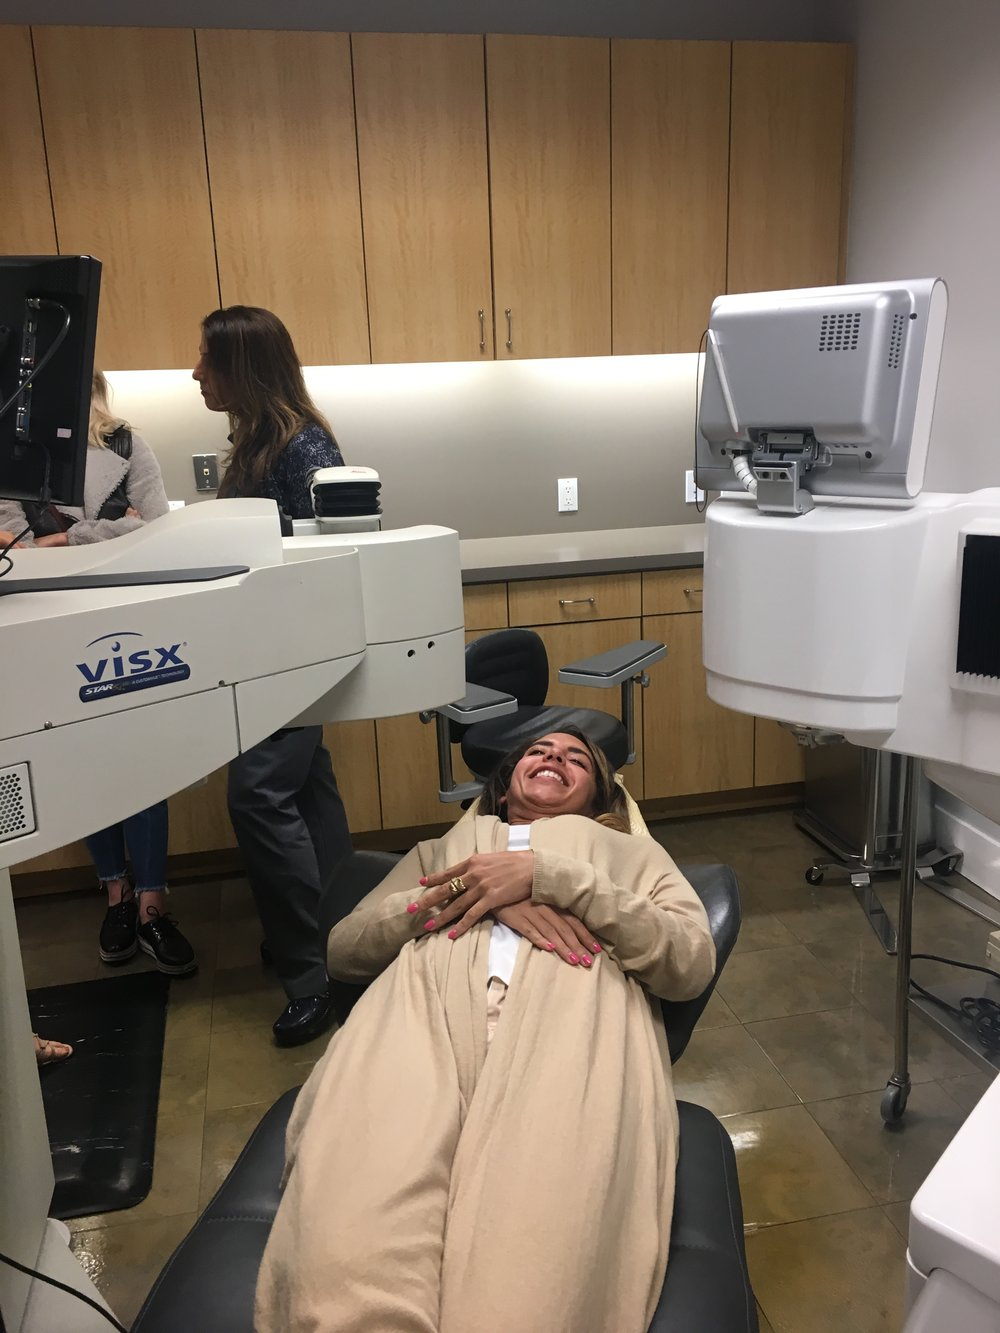 Maloney Vision Institute's operating chair